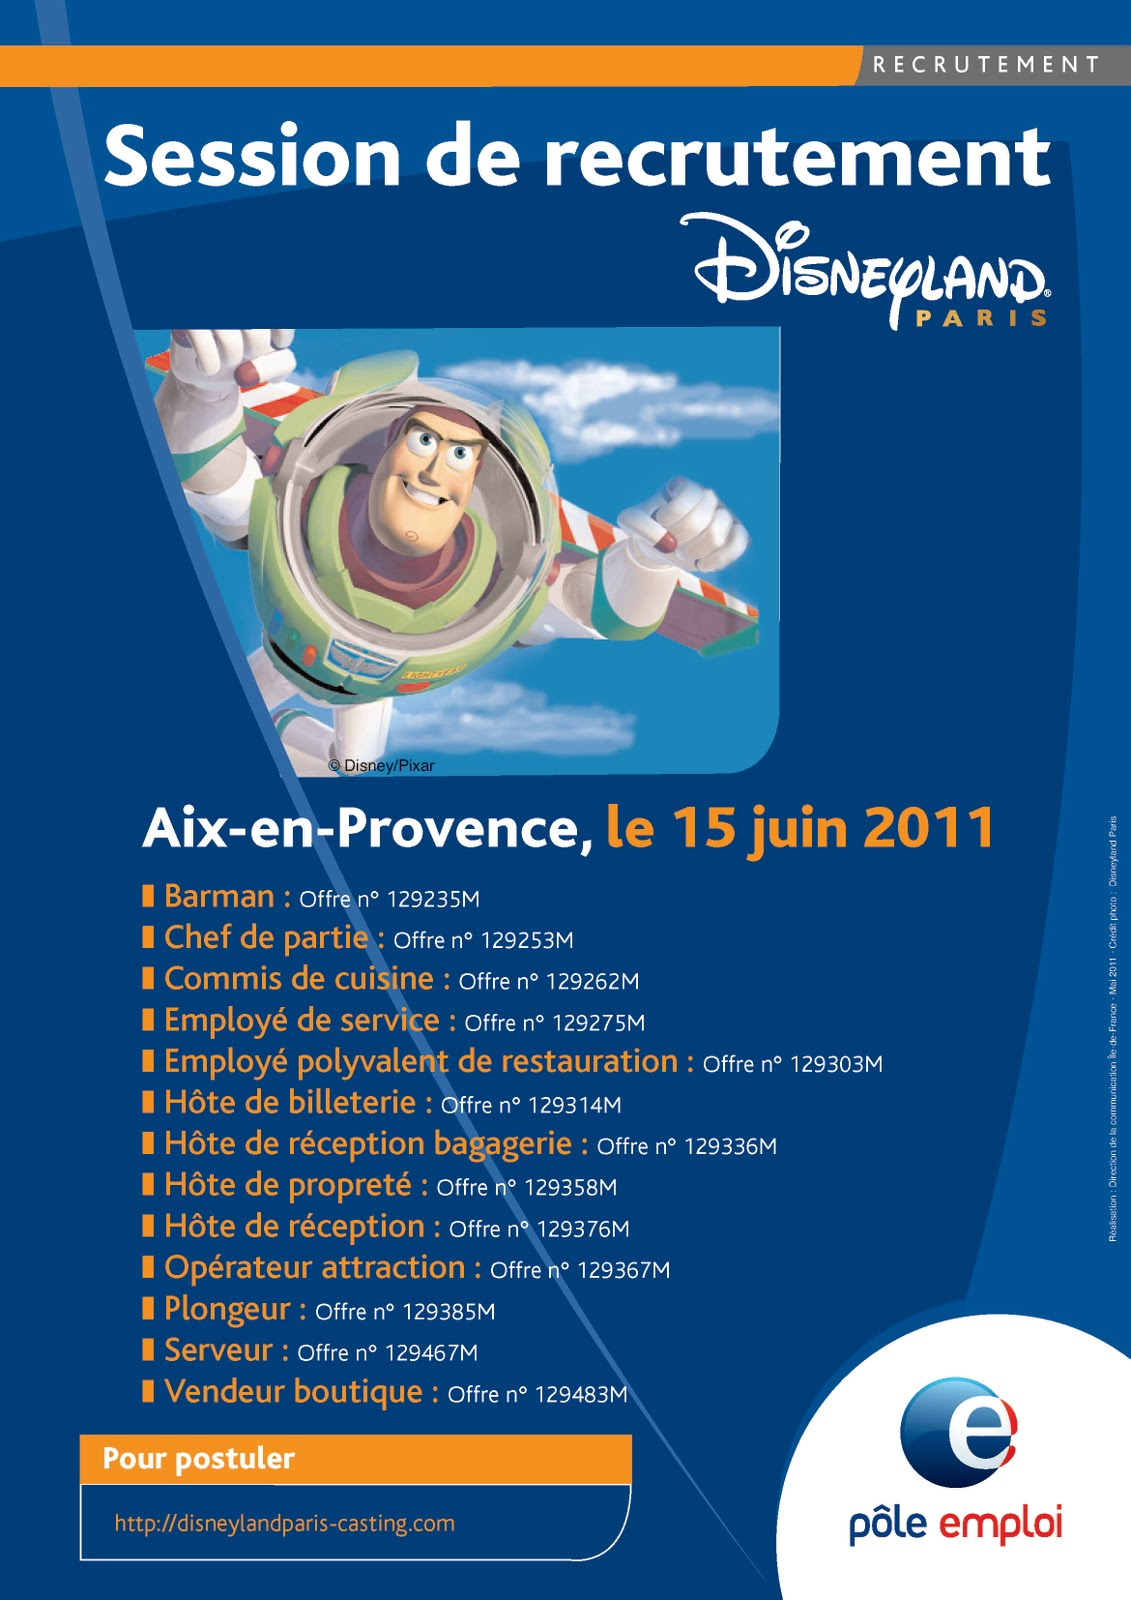 disneyland paris recrute